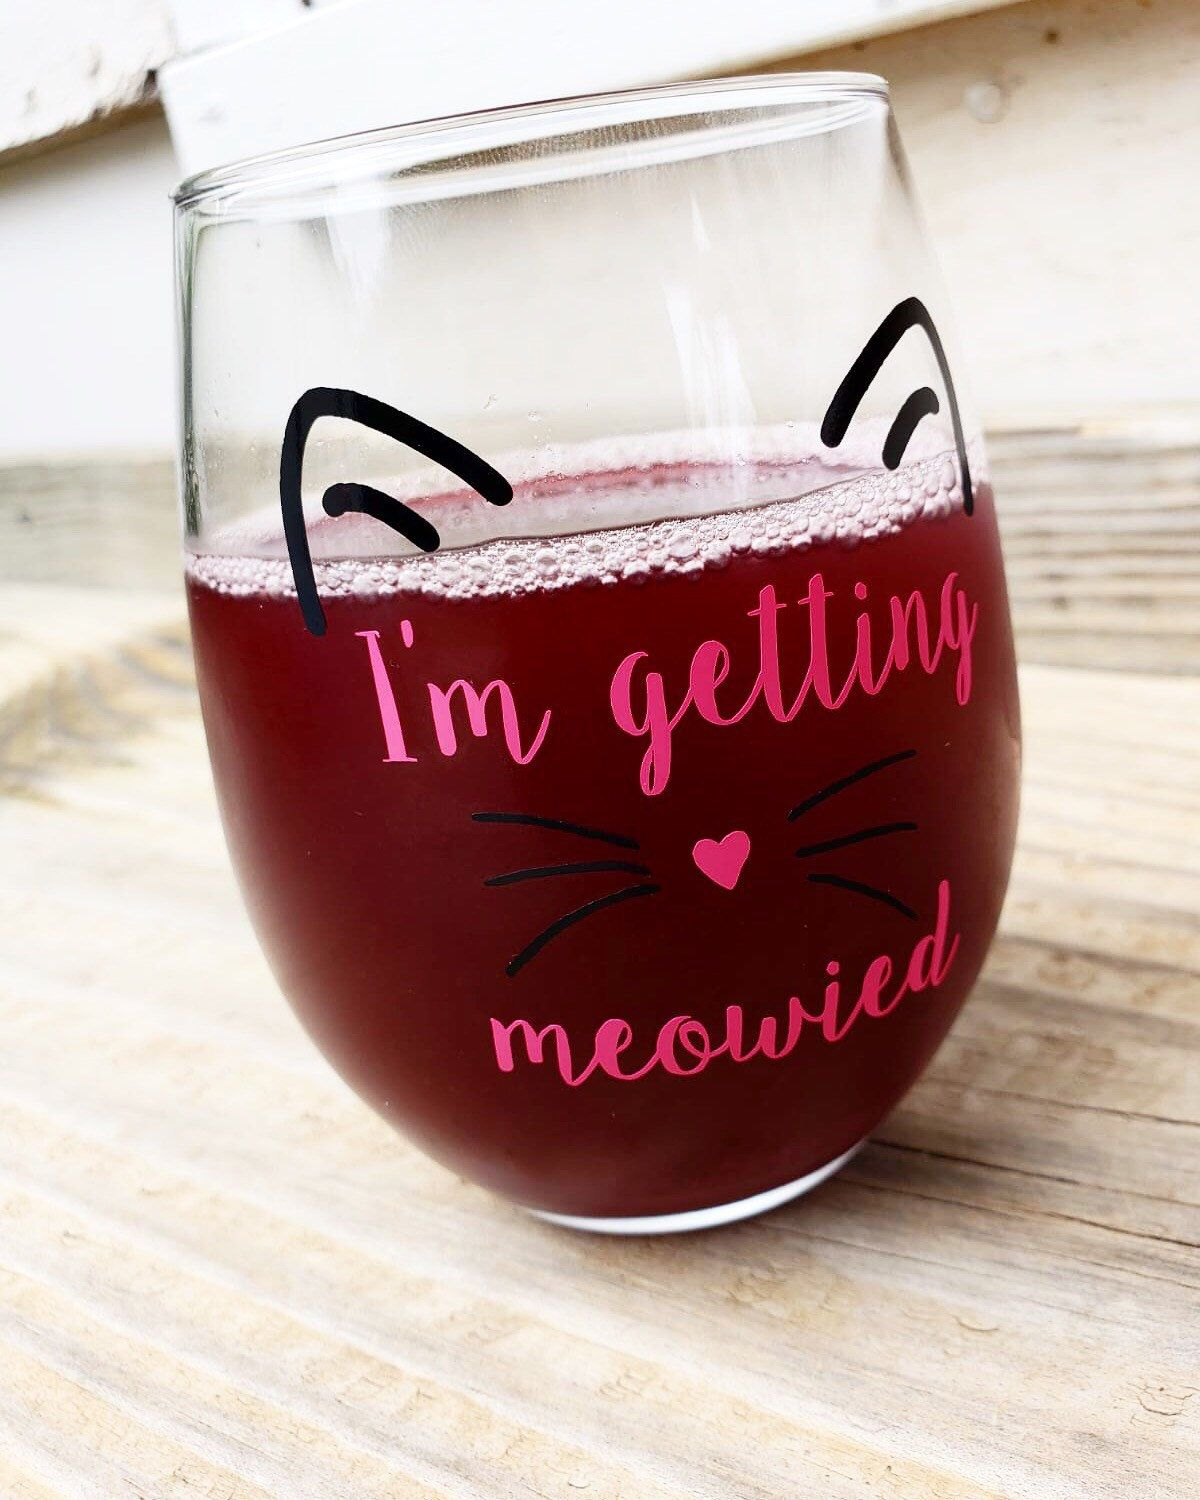 I M Getting Meowied Engagement Gift Future Mrs Wedding Etsy Engagement Gifts For Bride Wedding Gifts For Friends Best Friend Wedding Gifts